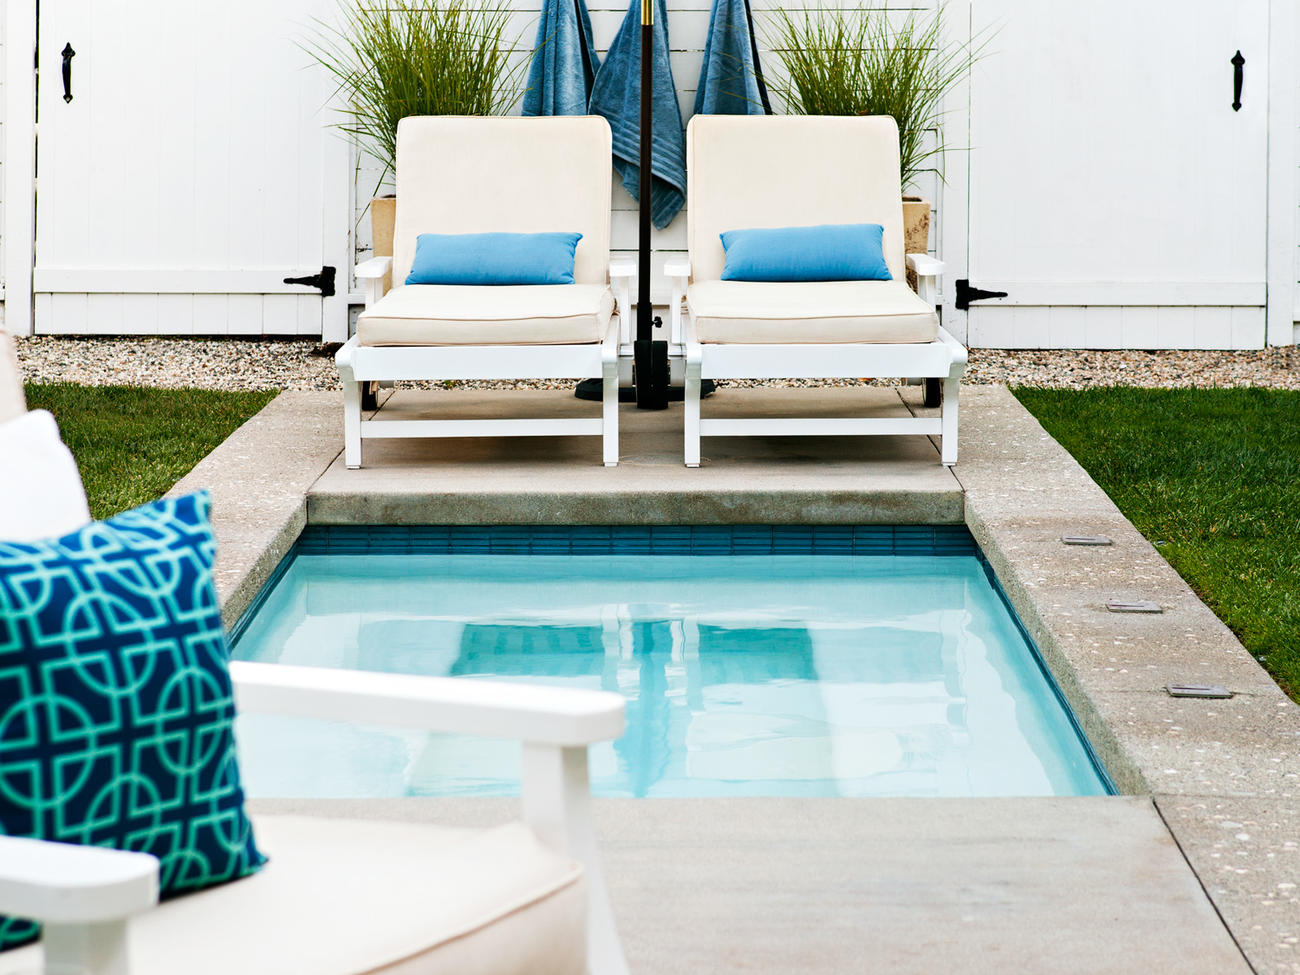 Give Your Backyard a Beach Club Look